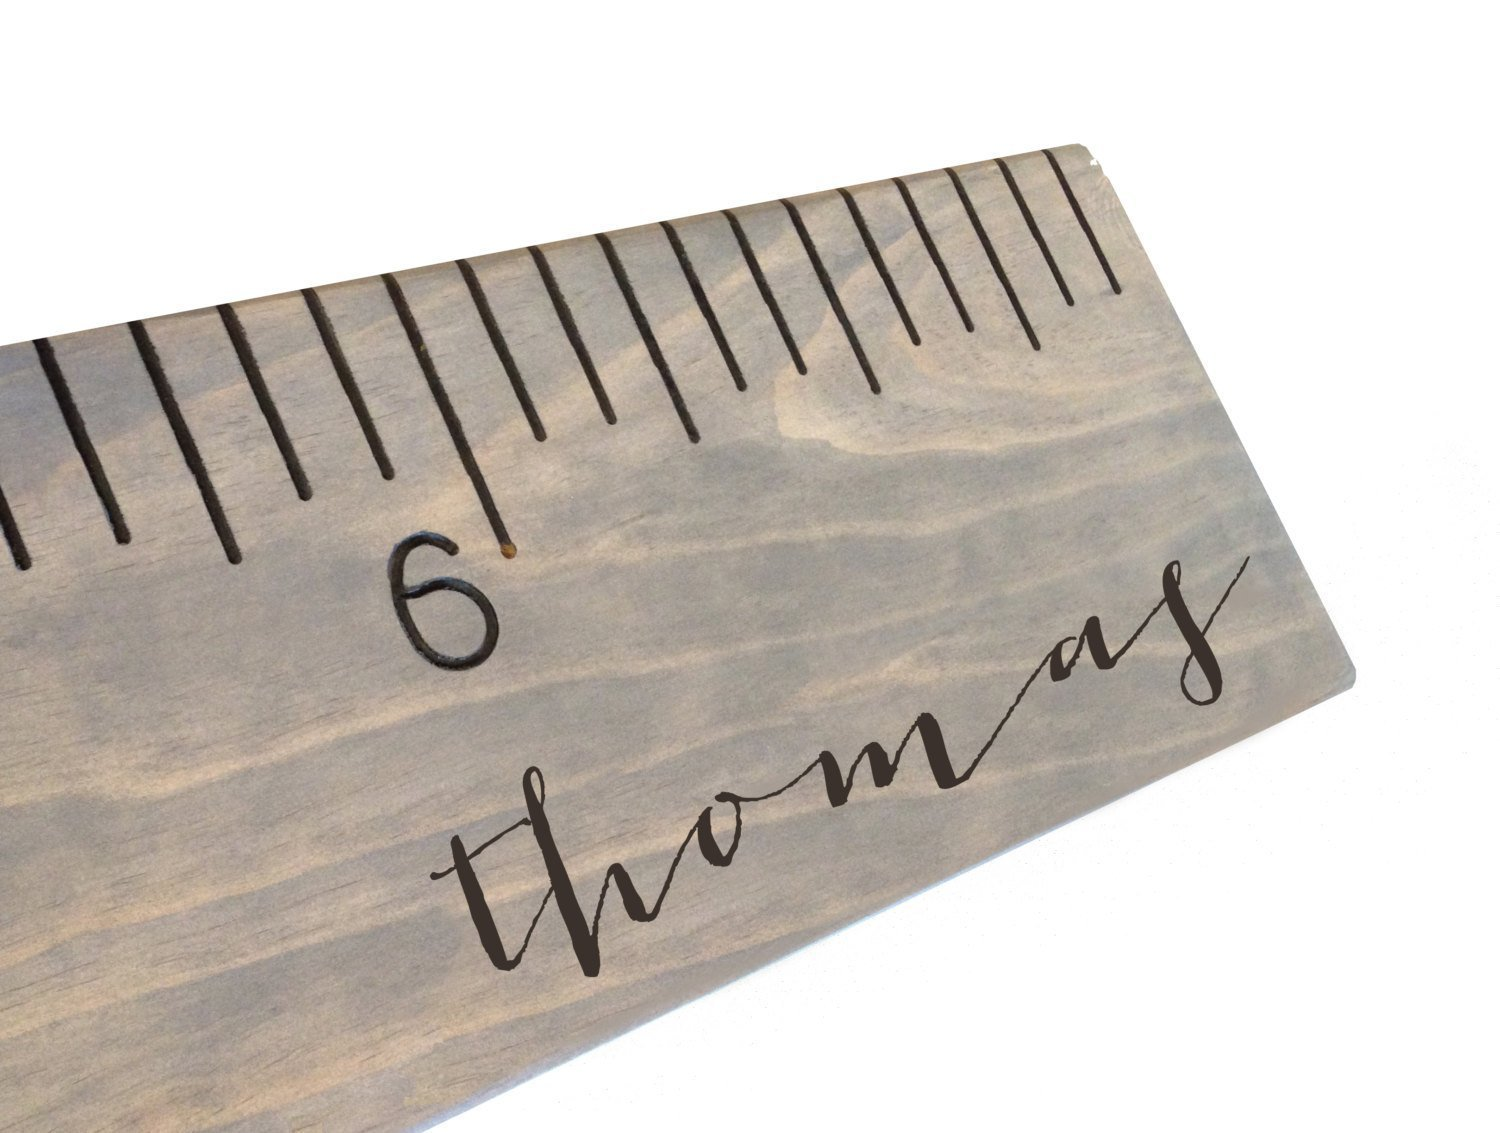 custom engraved calligraphy growth chart, personalized wooden ruler, measuring height stick, routed by Half Pint Ink Studio (Image #6)